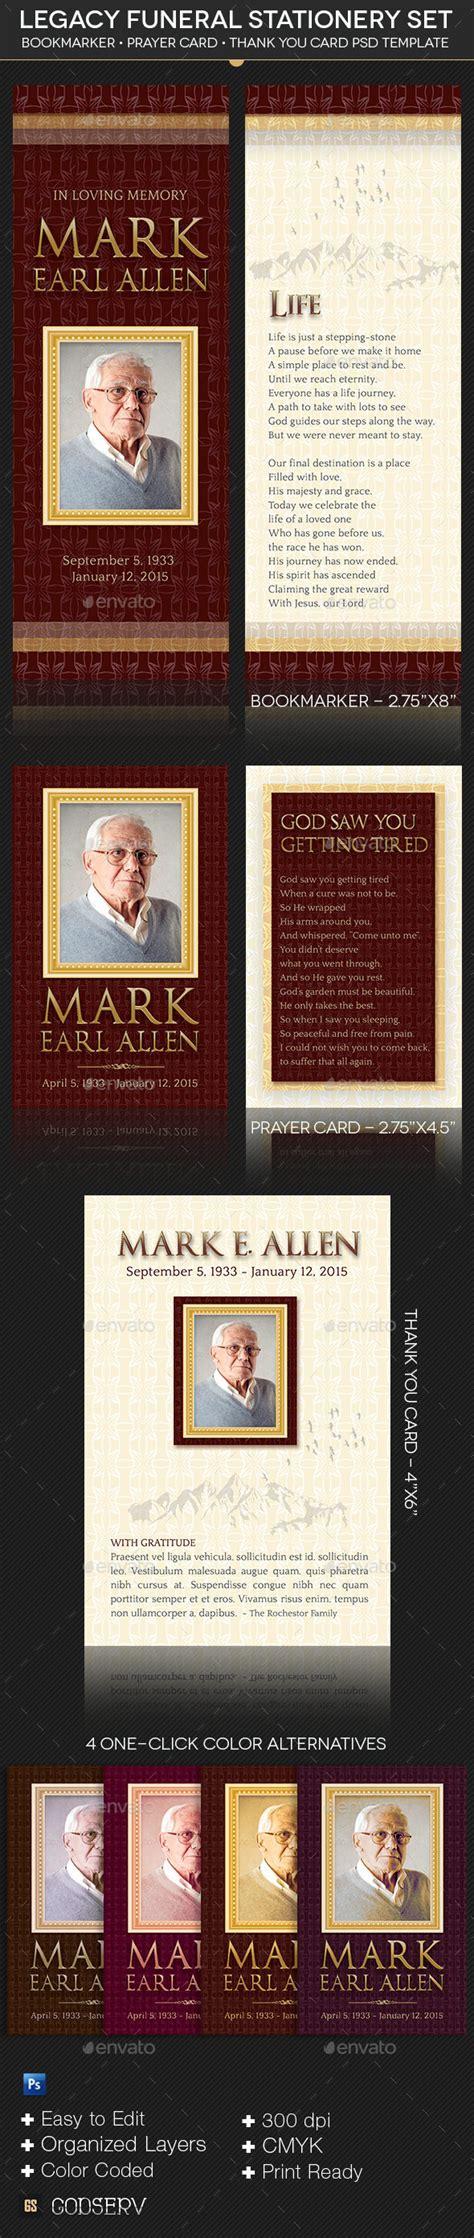 prayer card template photoshop legacy funeral stationery template set graphicmule